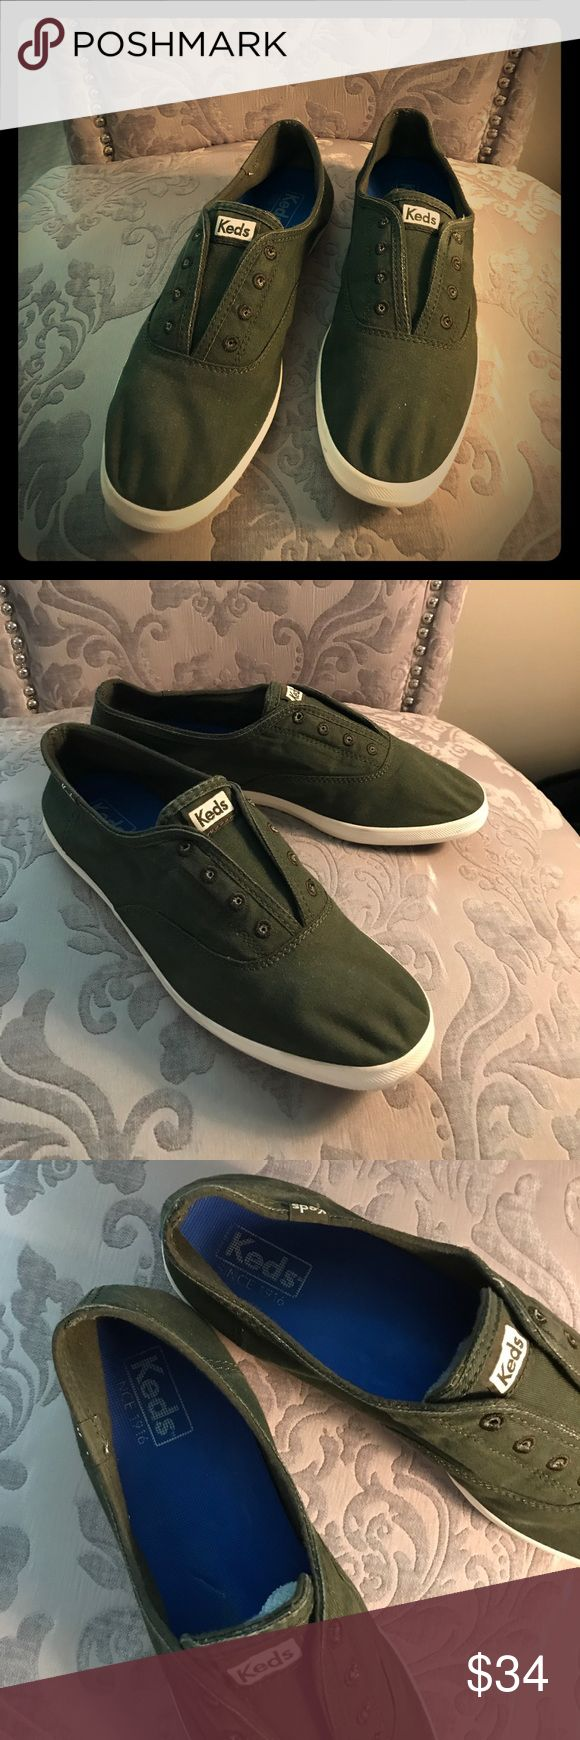 Keds Chillax Slip Ons in Forest Green Brand Keds. Size 10 (M). Worn once. Smoke free home. Keds Shoes Flats & Loafers